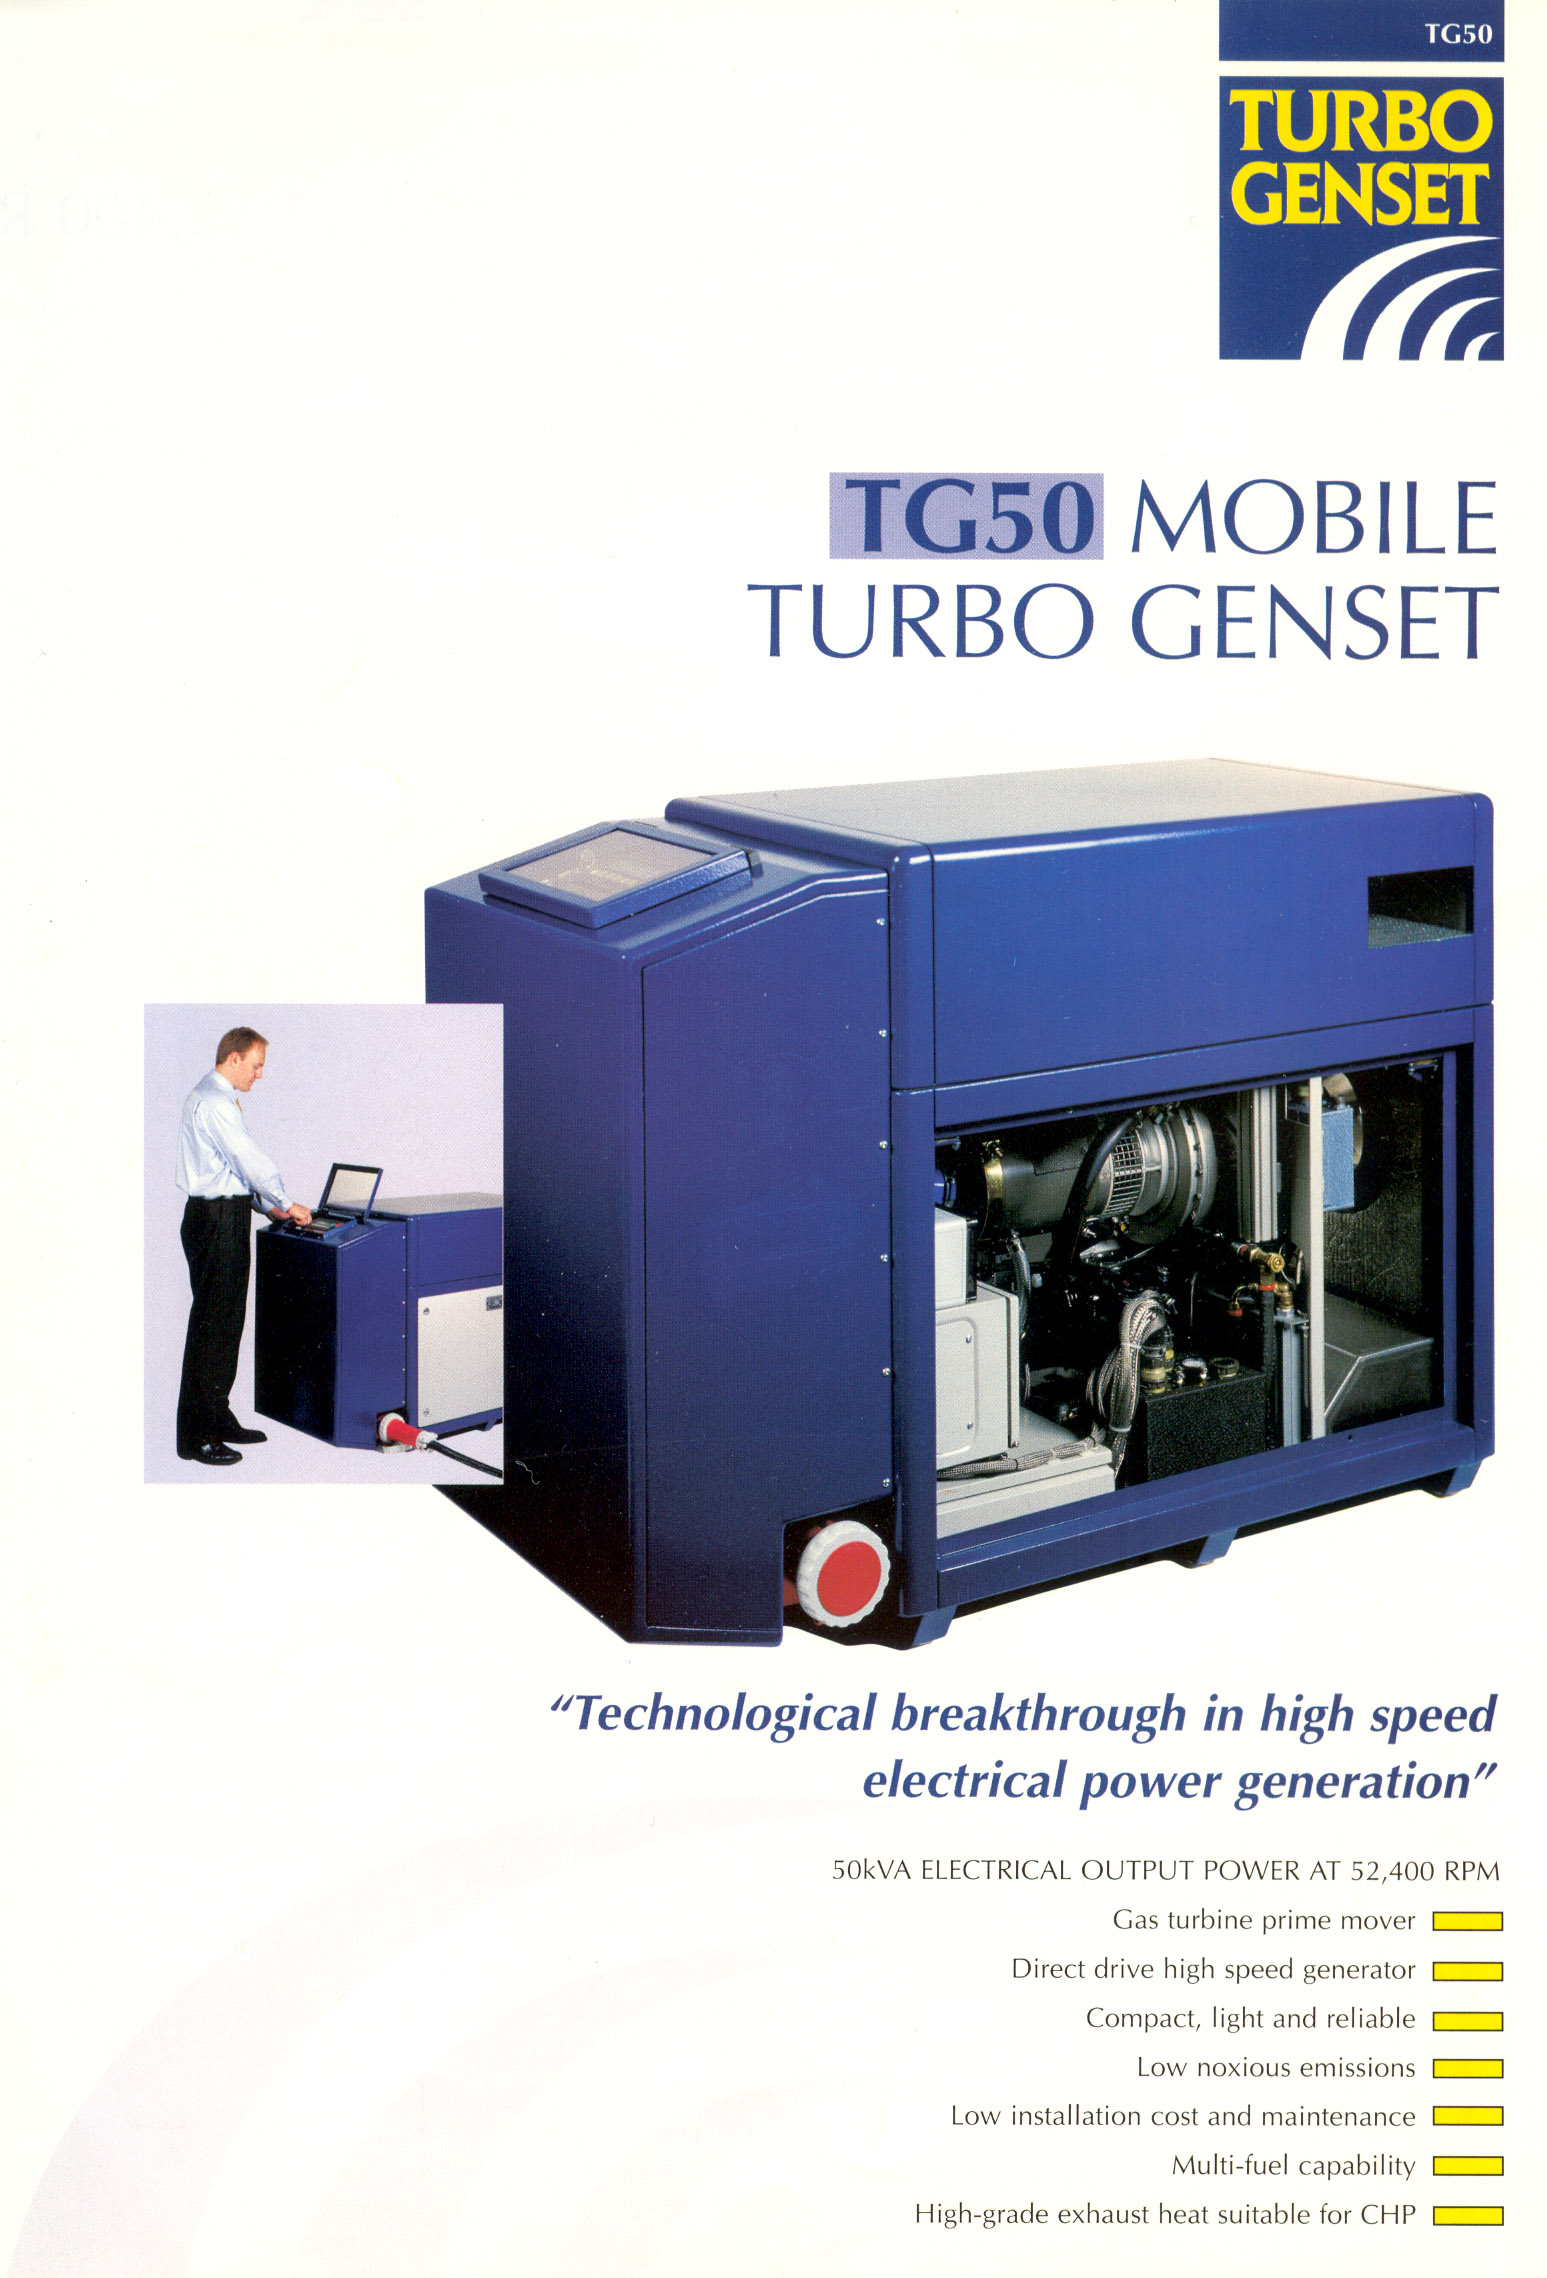 The Turbo Genset pany Microturbine